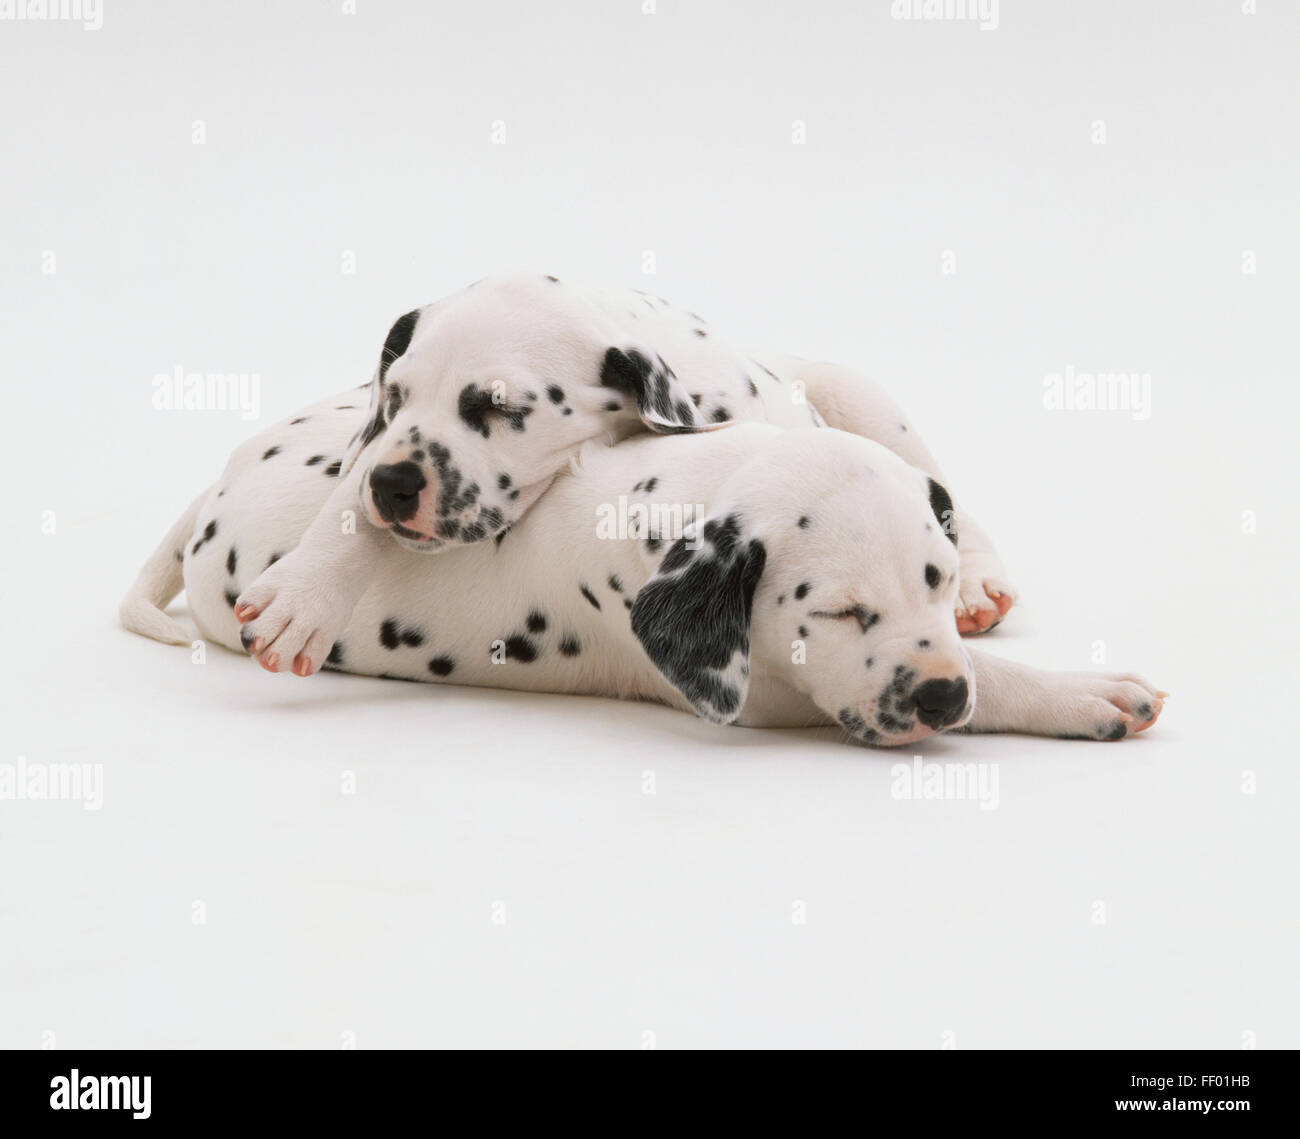 Two Dalmatian dogs, asleep, eyes closed, one resting on top of other. Stock Photo